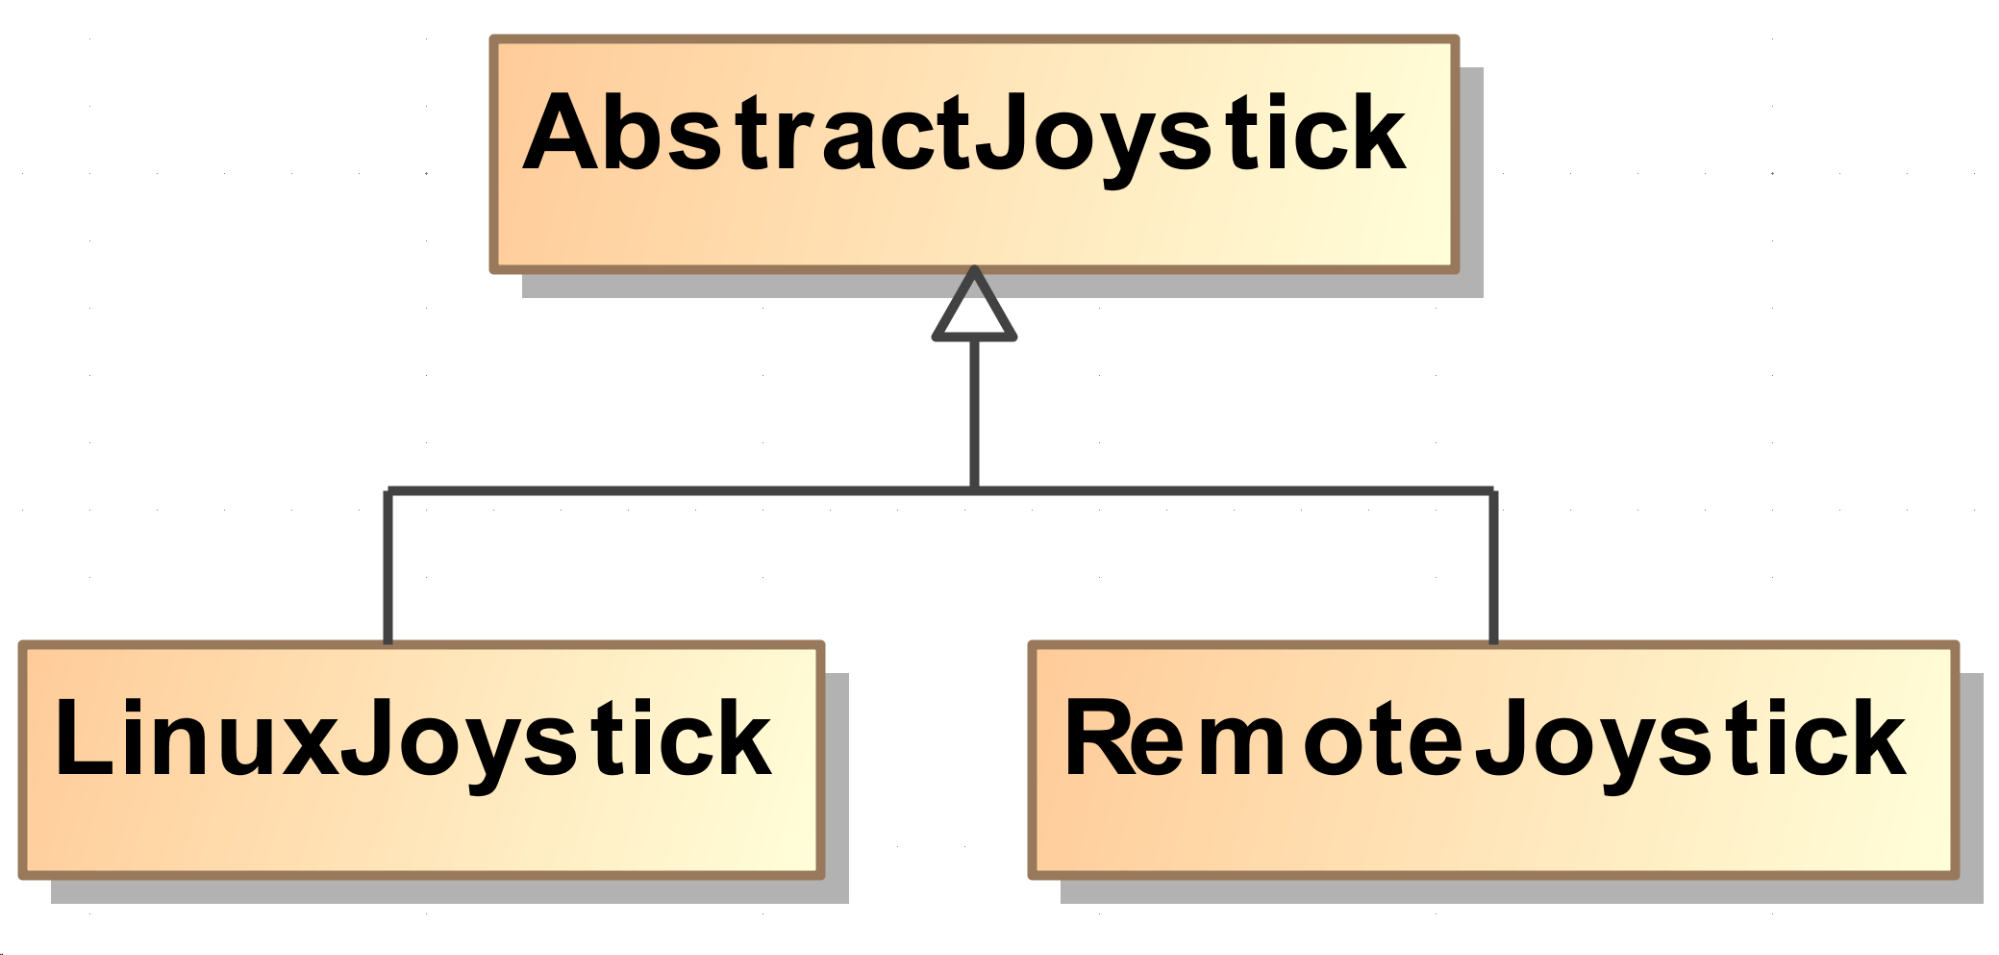 Robocar with Docker: abstraction